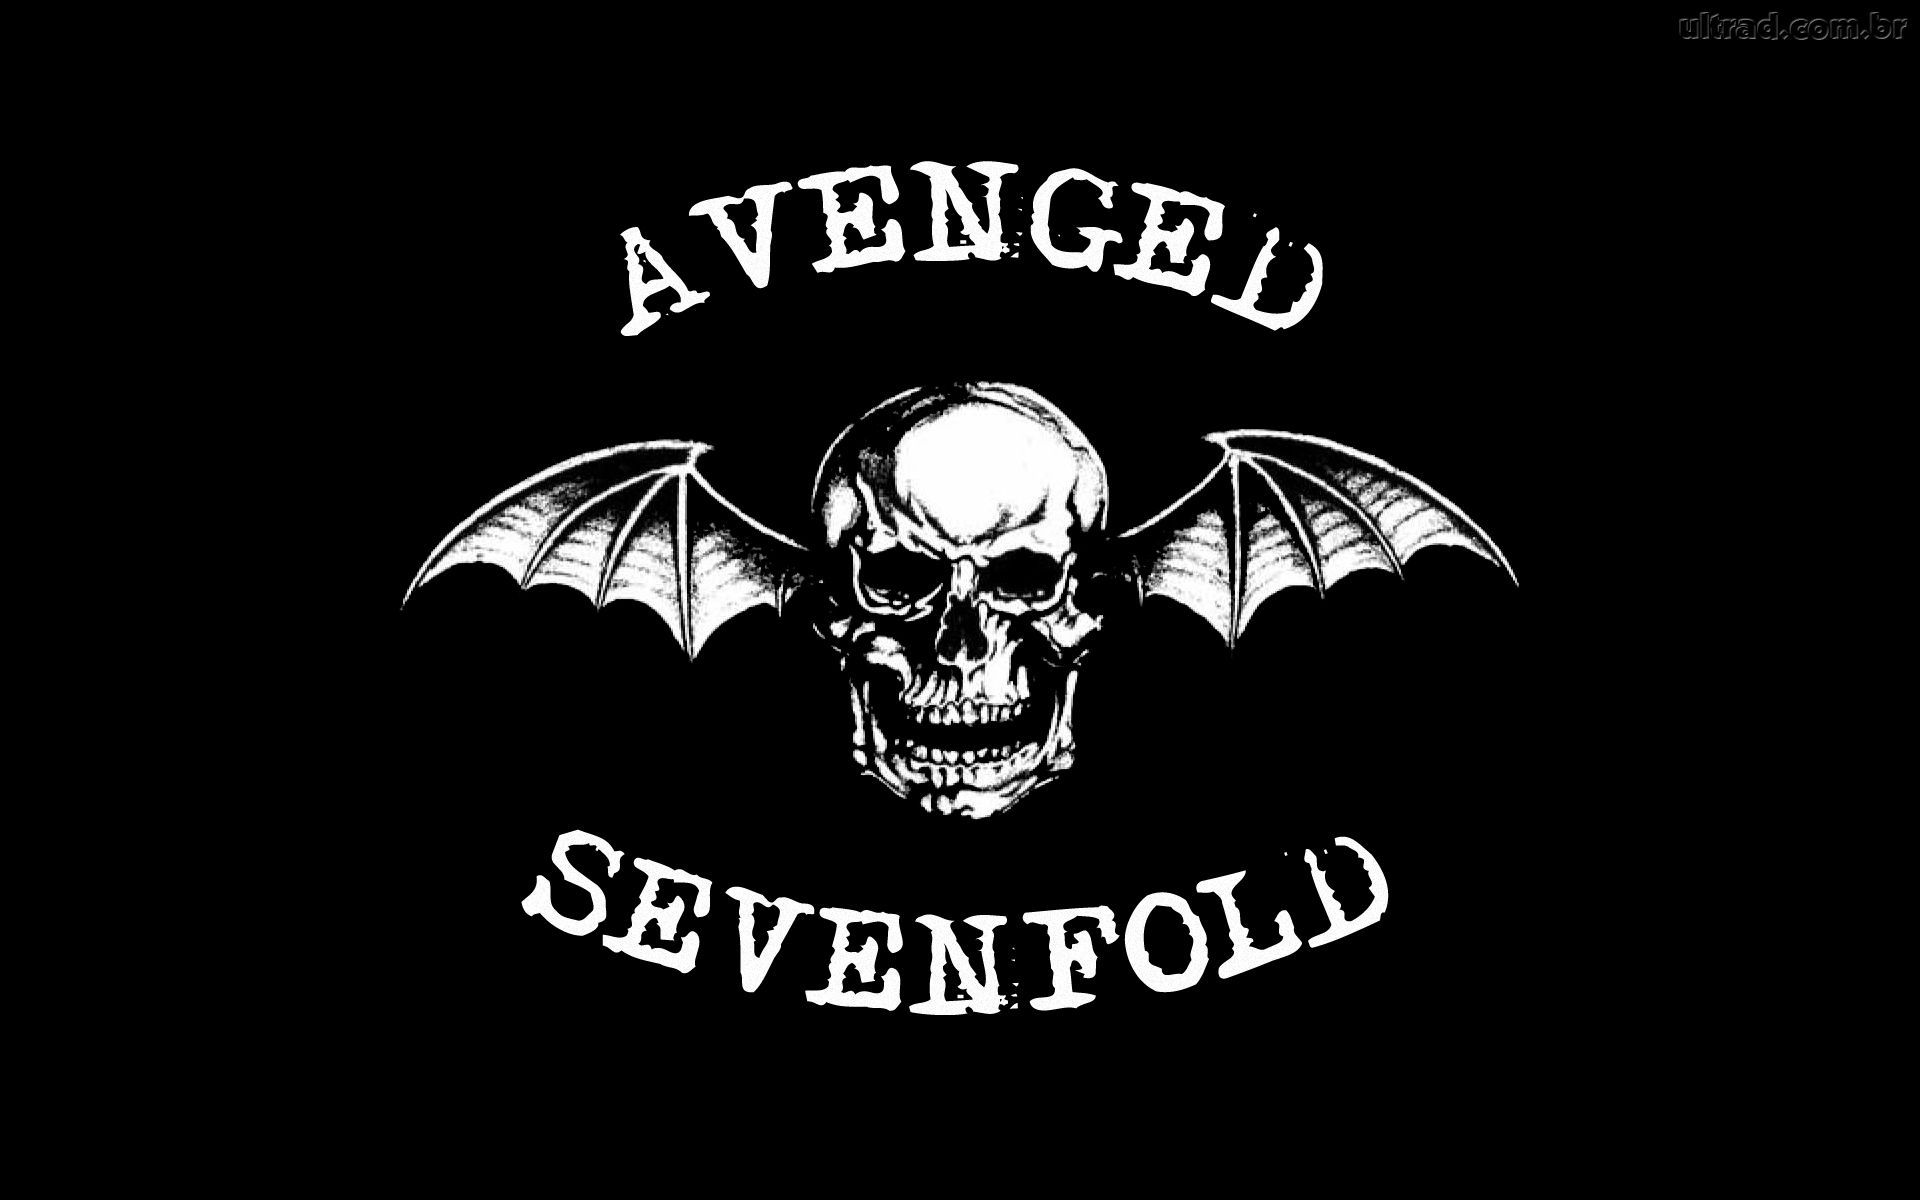 Avenged Sevenfold A7x Logo Best Hd Wallpaper Wawpaper Dengan